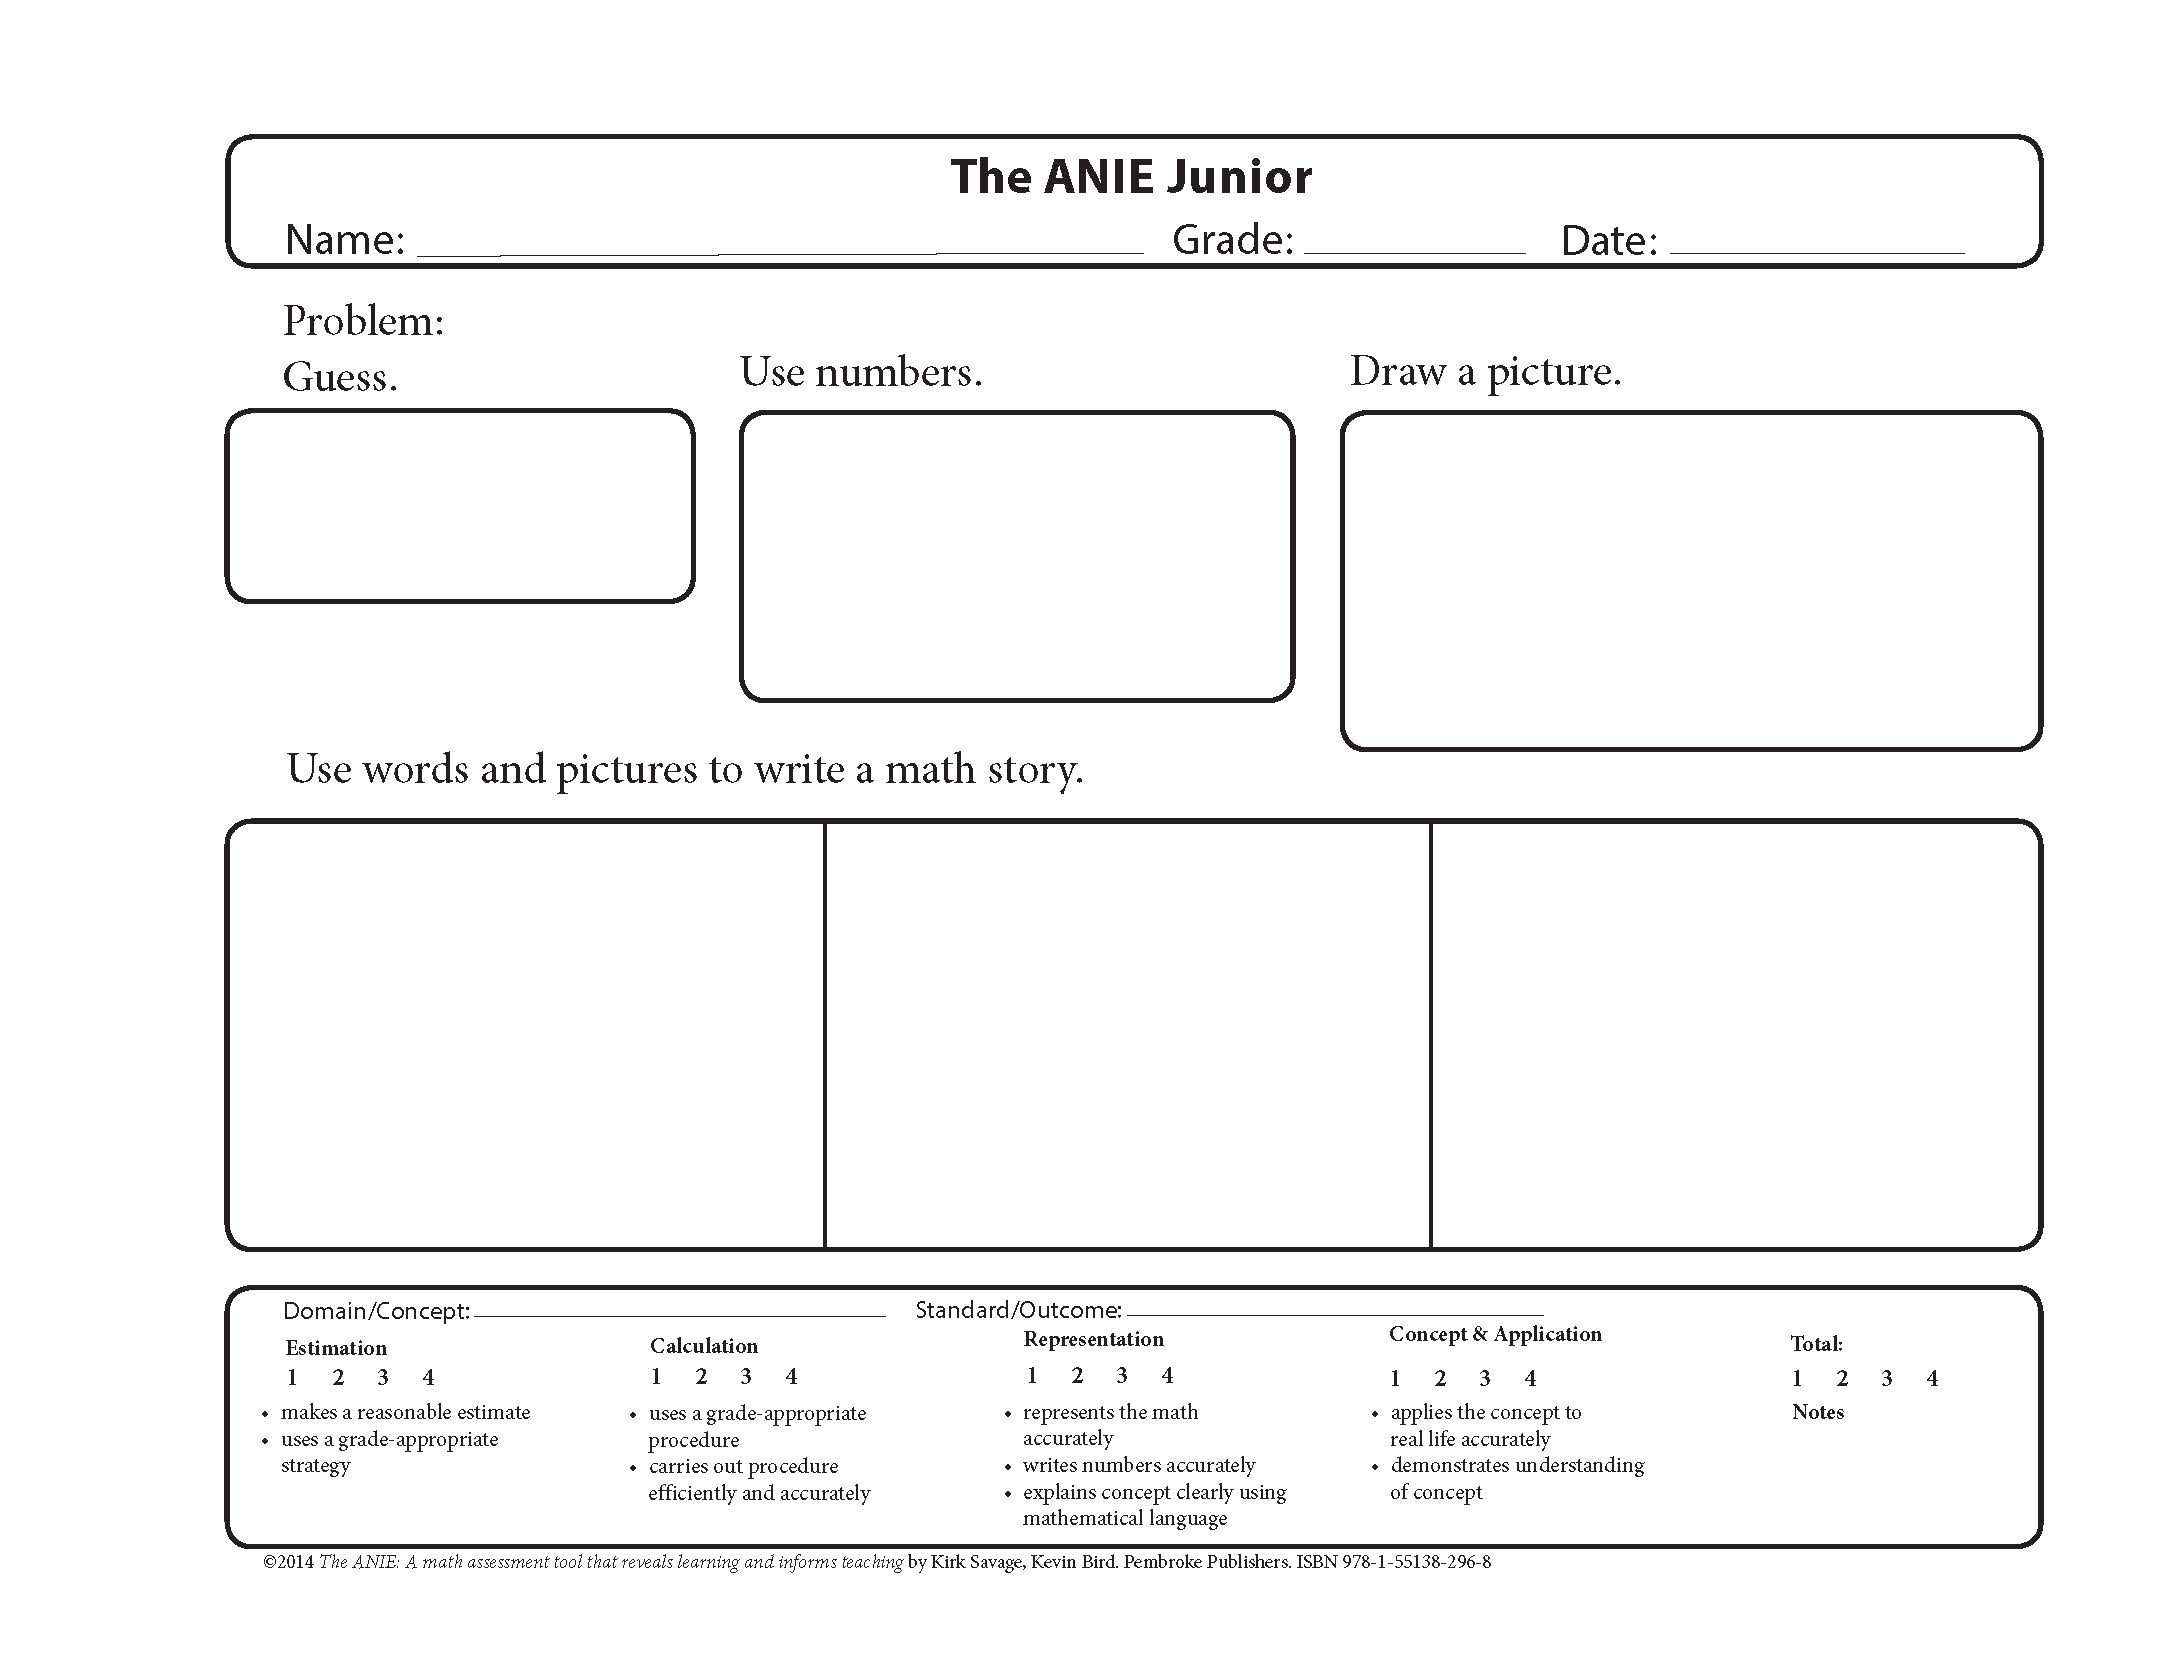 The ANIE Jr. Template. (Adapted from The ANIE: A Math Assessment ...